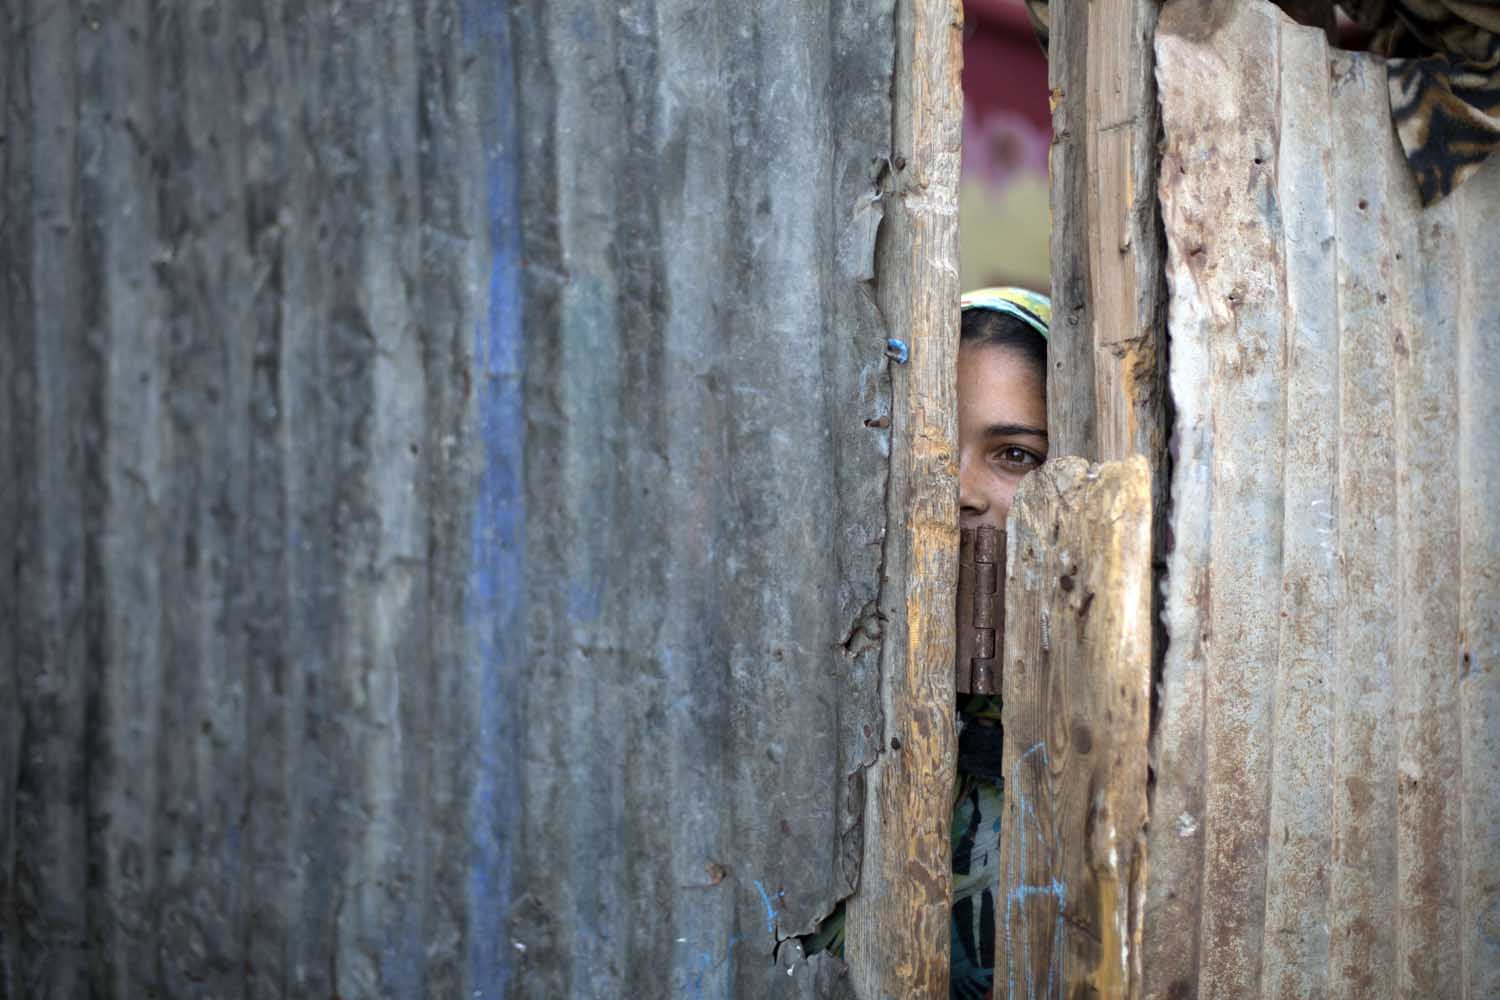 Jun. 10, 2014.                                A Palestinian girl peeps through the gate of ther home in Beit Lahia, in the northern of Gaza Strip. Some 1.6 million Palestinians live in the Gaza Strip, of whom almost 1.0 million are UN-registered refugees who were driven from or left their homes during the 1948 Arab-Israeli War.